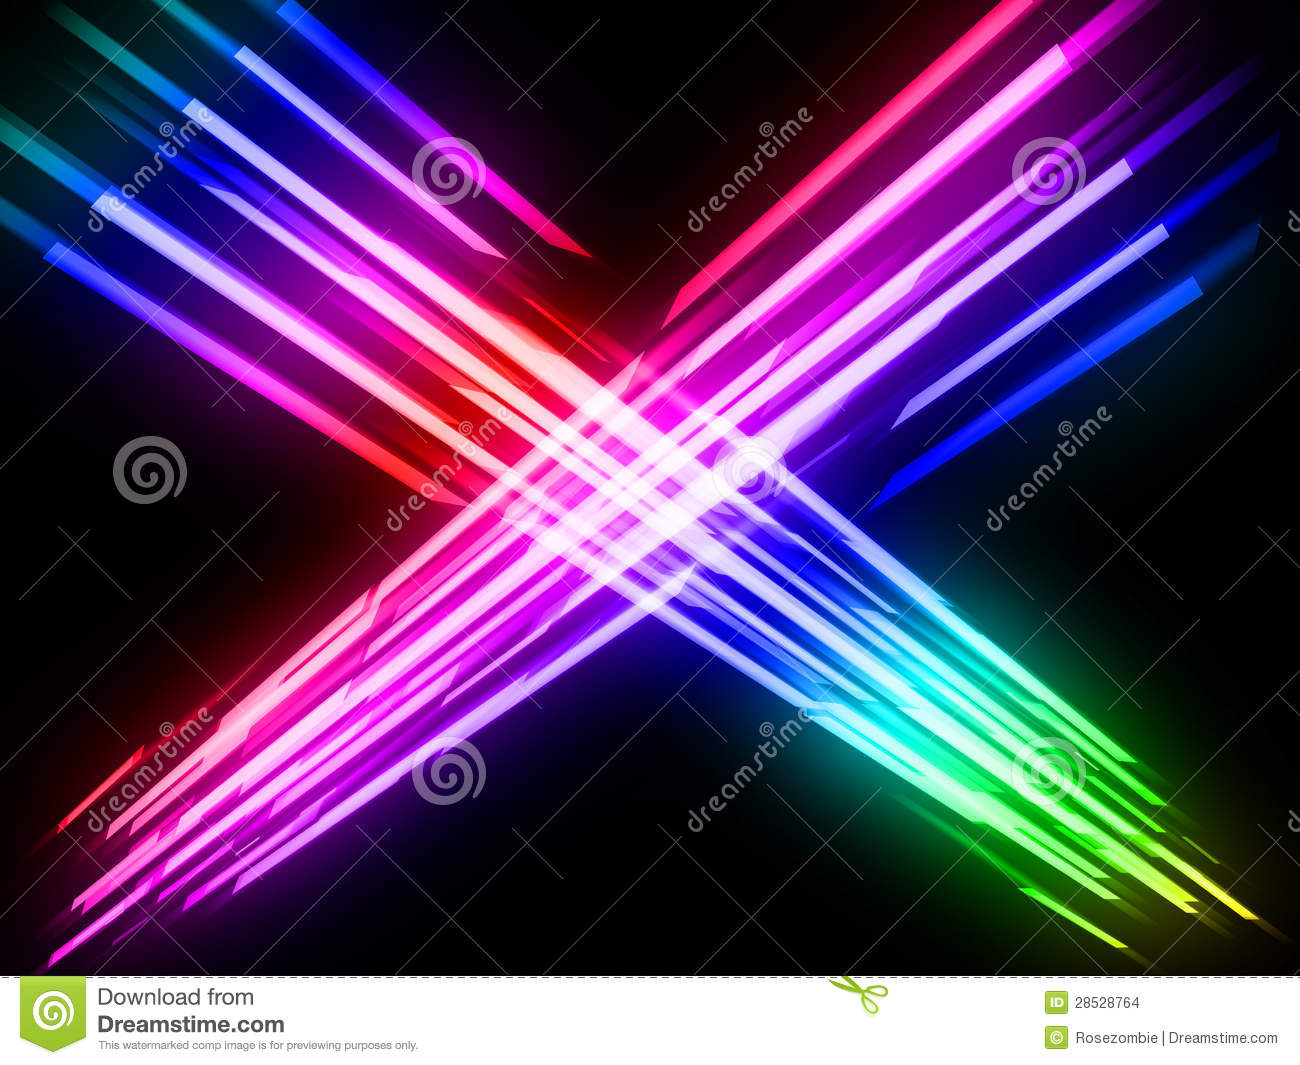 Samsung S8 3d Wallpaper Download Abstract Laser Light Background Stock Images Image 28528764